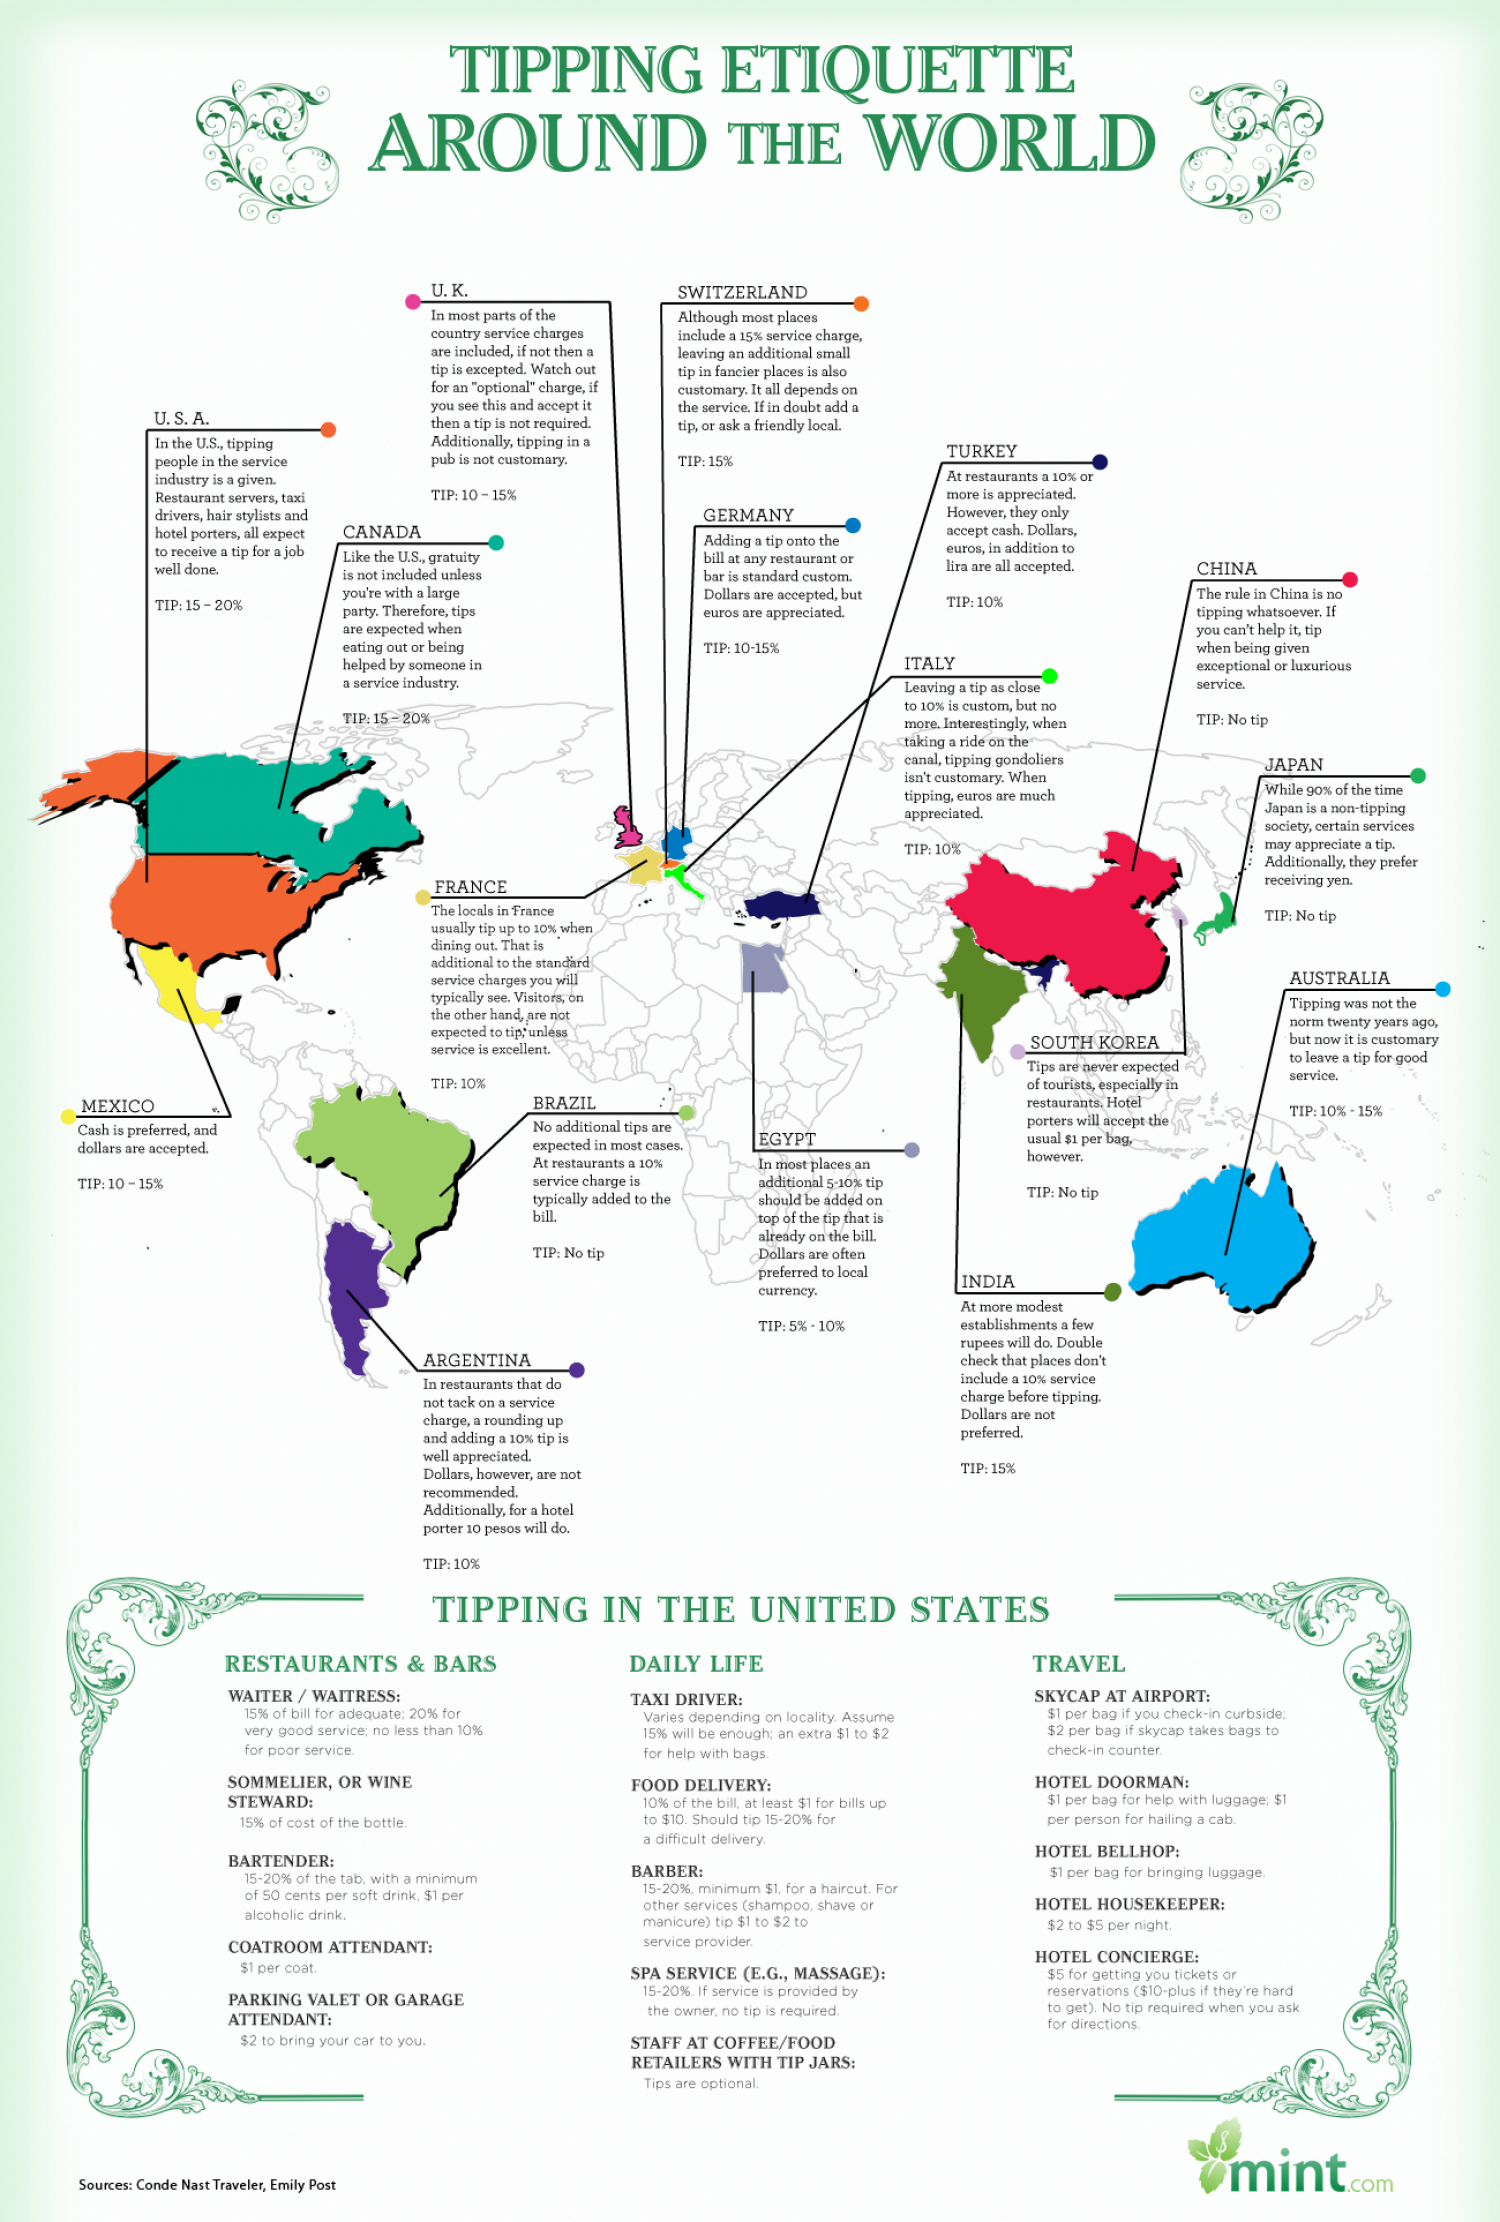 Tipping Etiquette Around The World Infographic